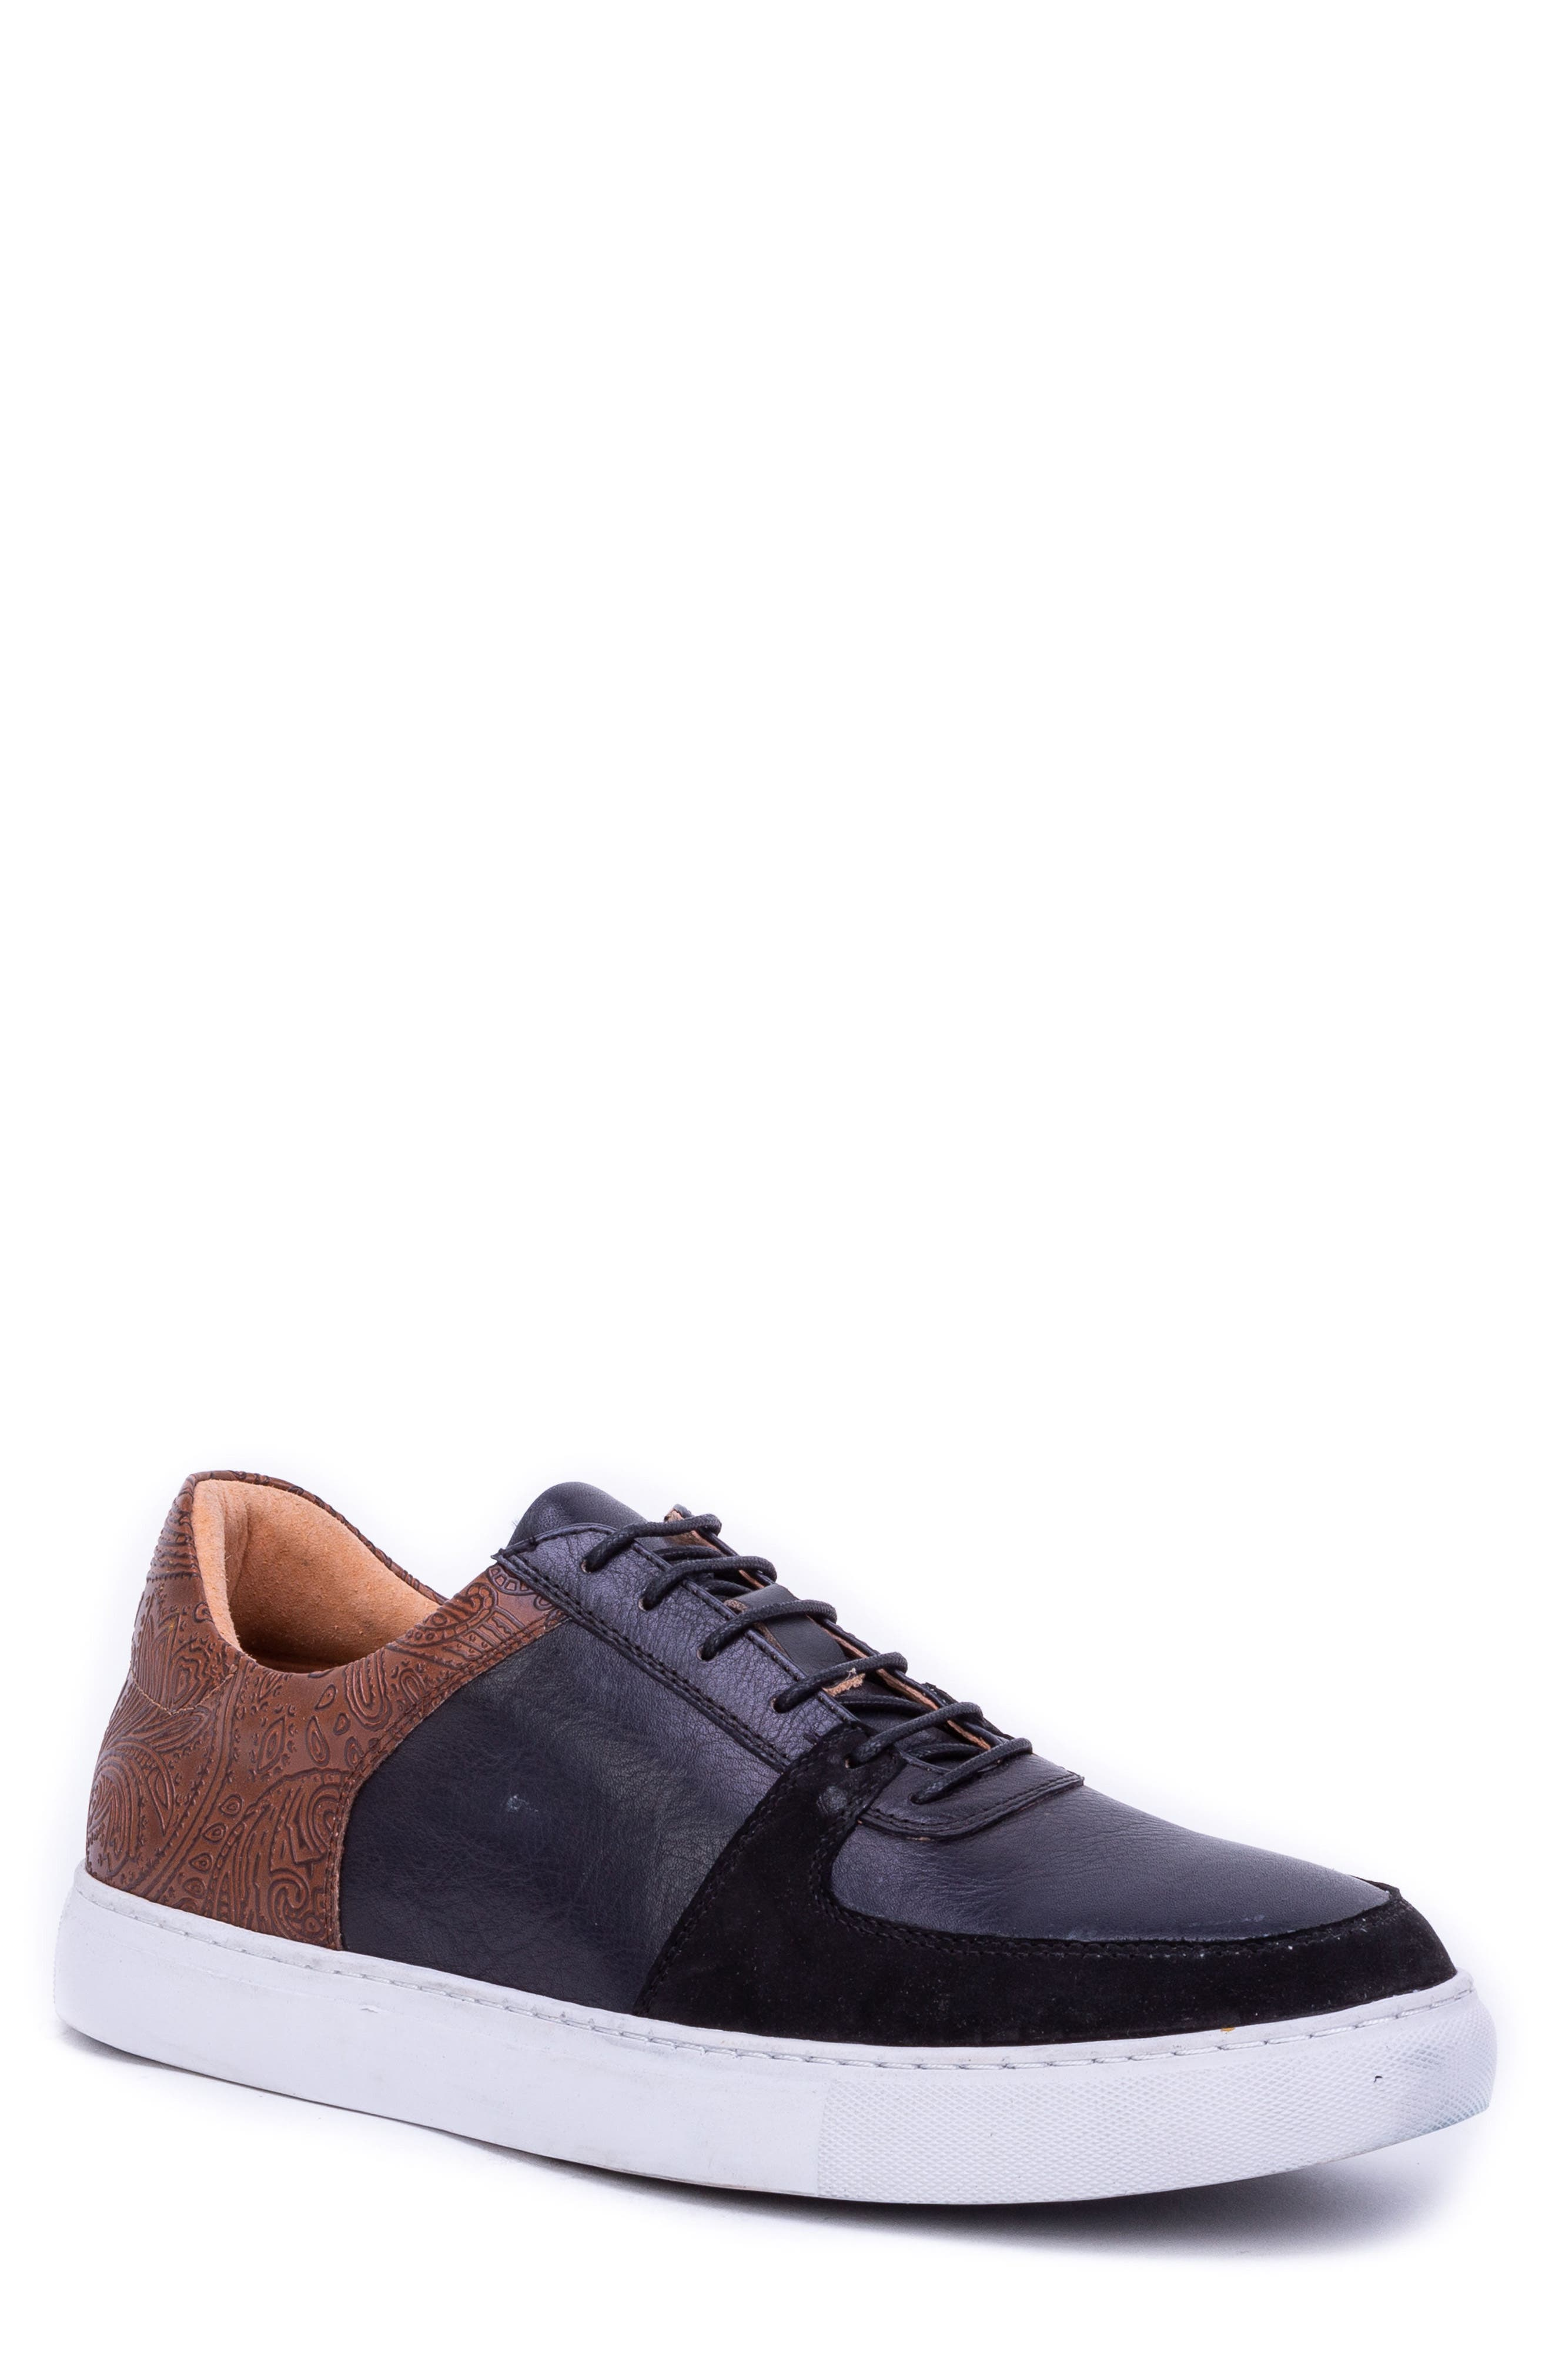 Chadwick Paisley Tooled Sneaker,                         Main,                         color, BLACK LEATHER/ SUEDE